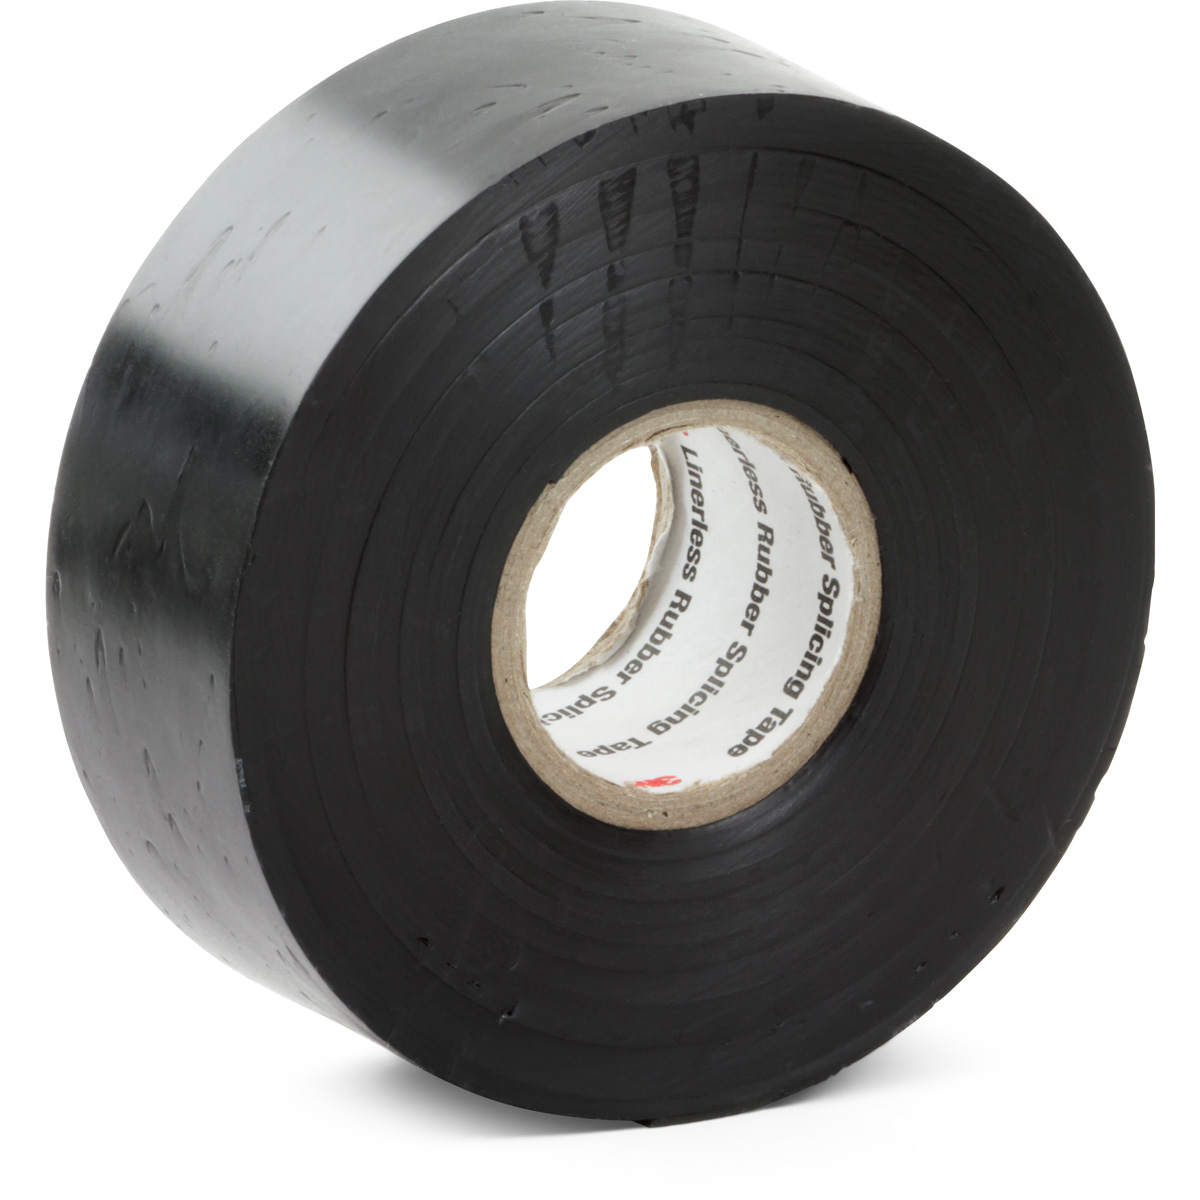 3m Scotch 174 Linerless Rubber Splicing Tape Kimball Midwest